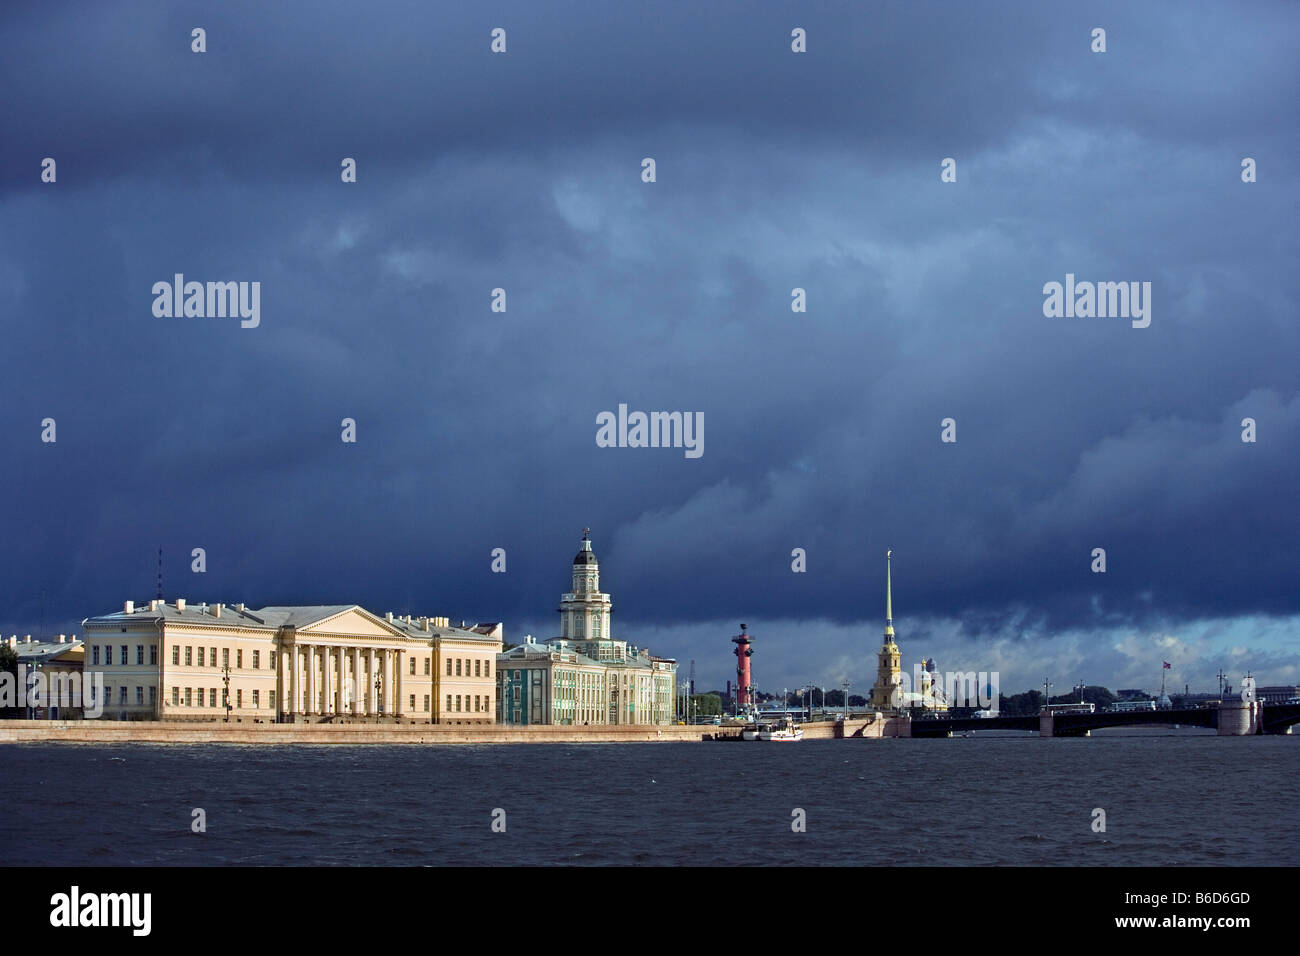 Russia, Saint Petersburg, View on the university at the border of the Neva river. - Stock Image